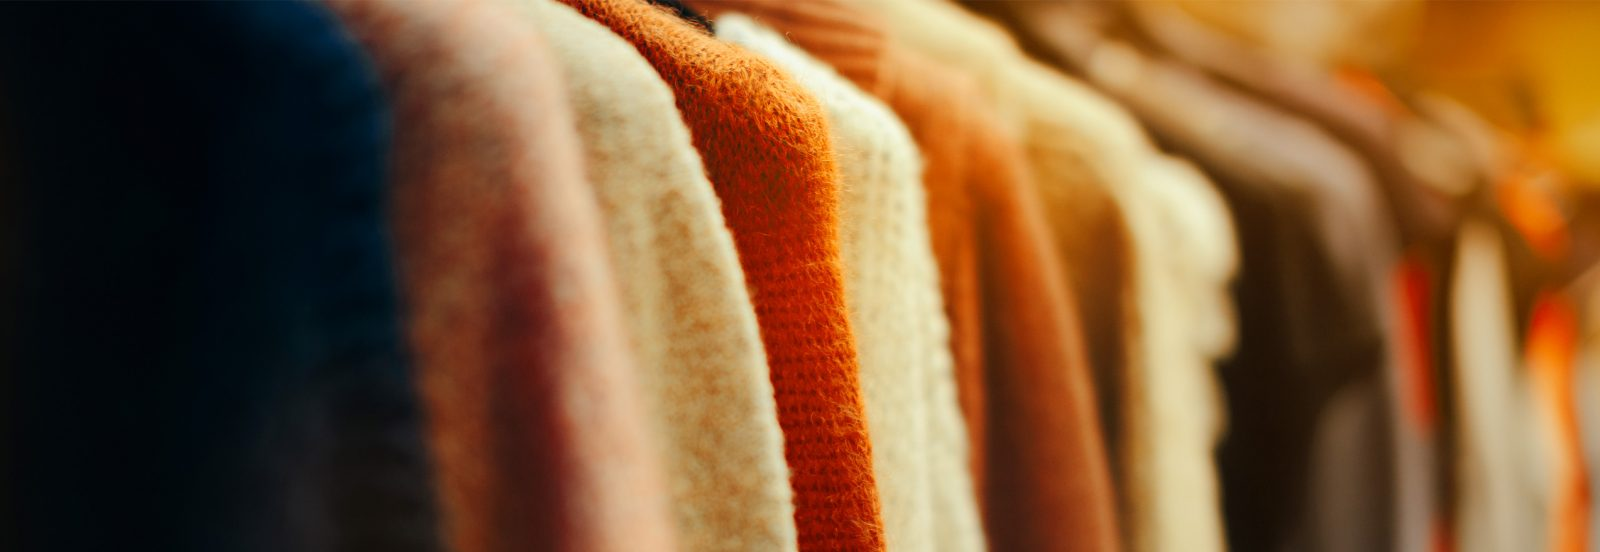 Close-up of clothing in a wardrobe.